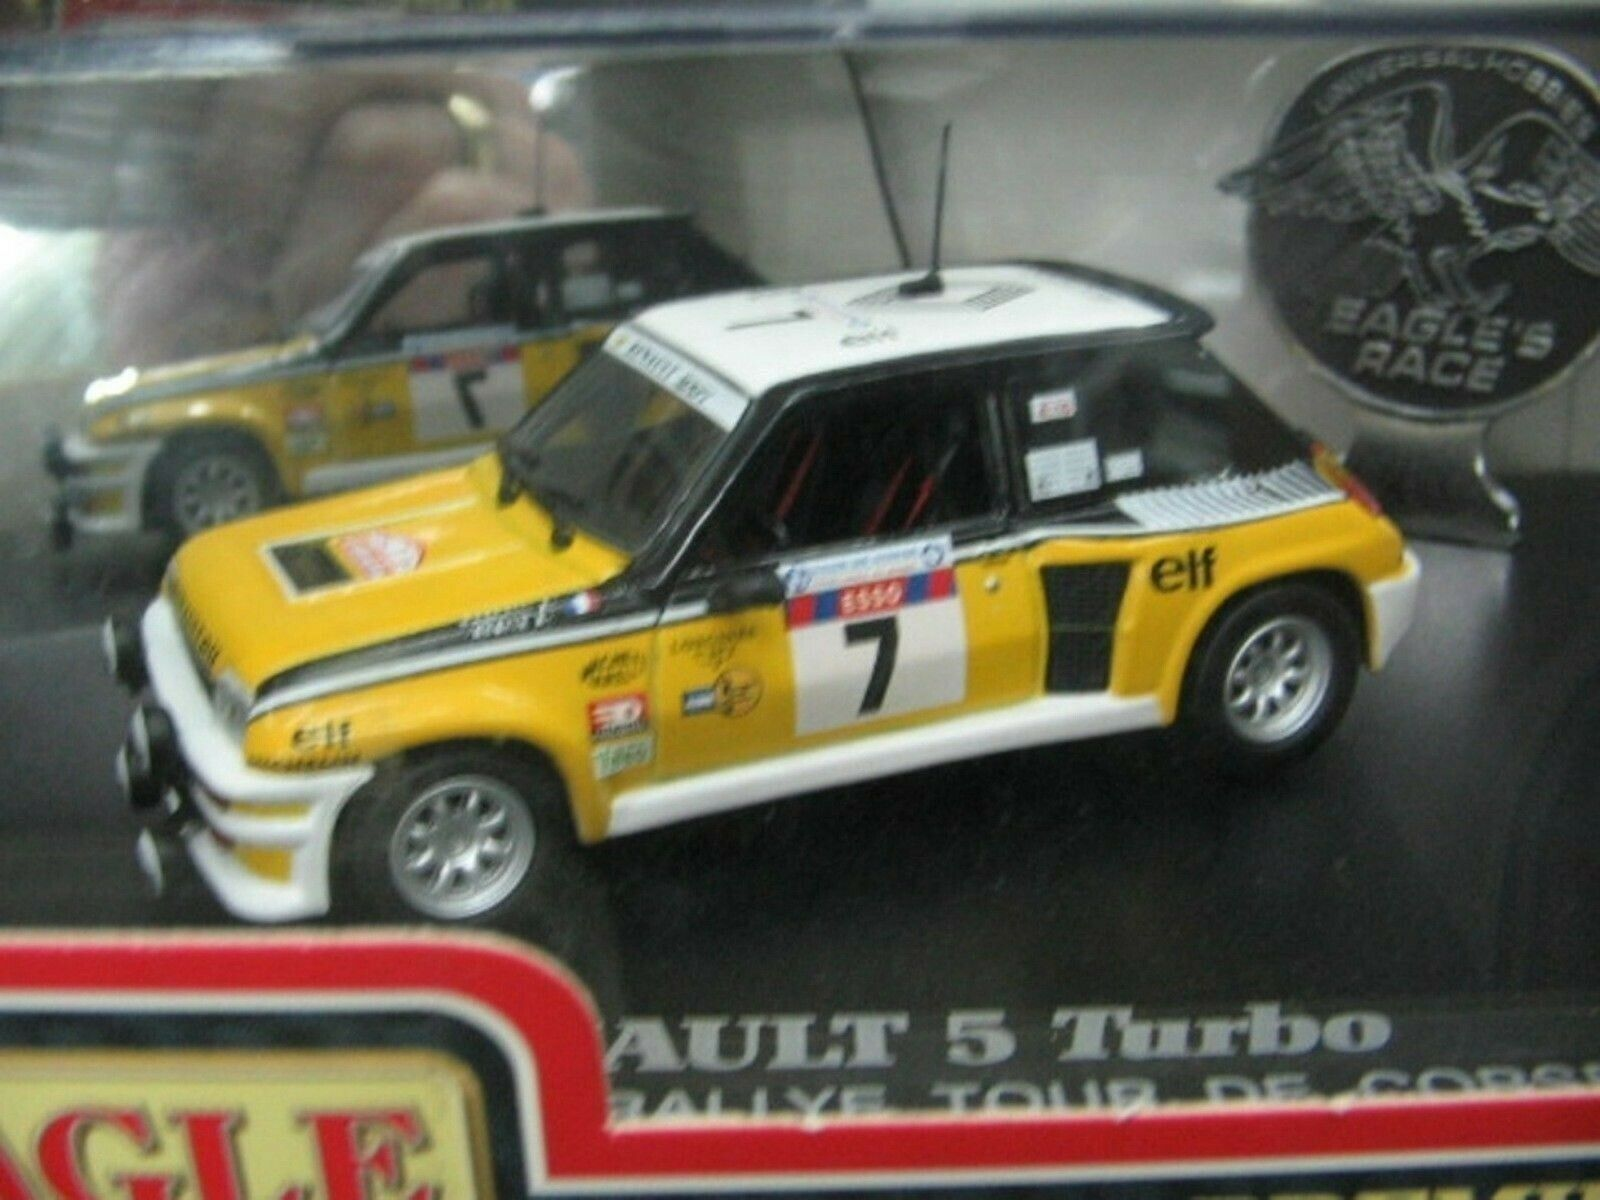 WOW EXTREMELY RARE Renault 5 Turbo WRC Ragnotti Td Corse 1982 1 43 UH-Spark